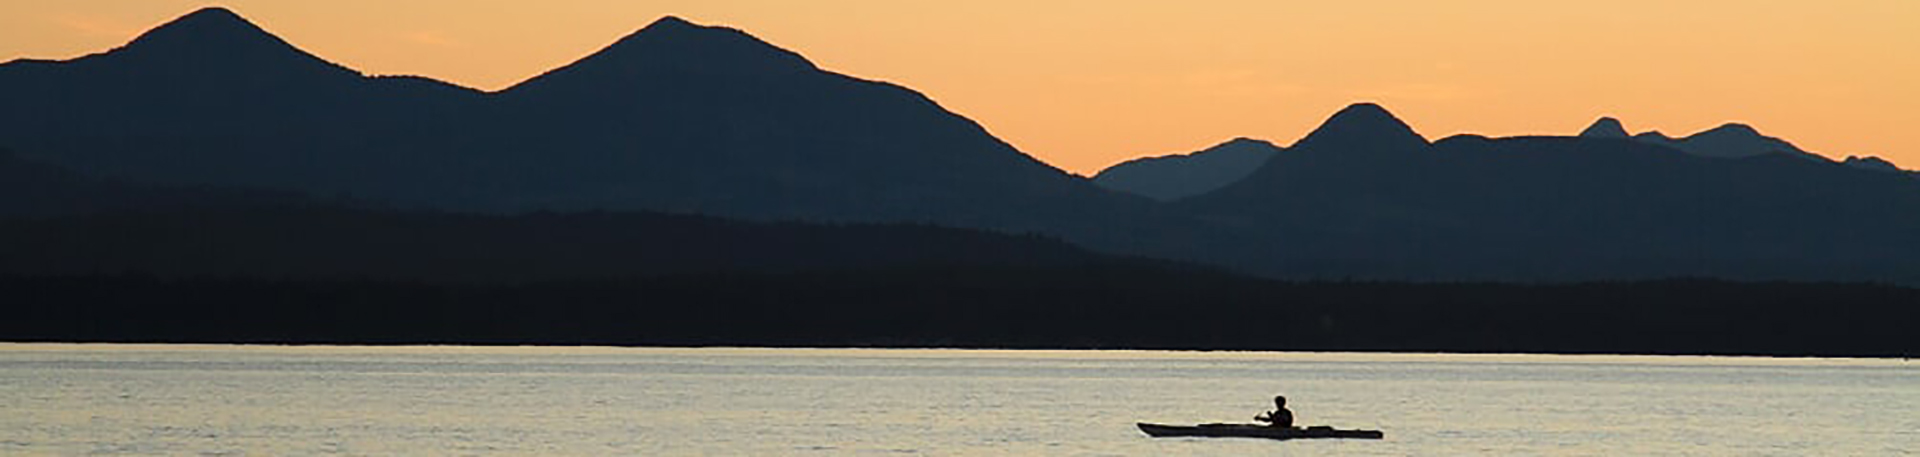 kayaker at sunset with shadowed mountain range in the distance